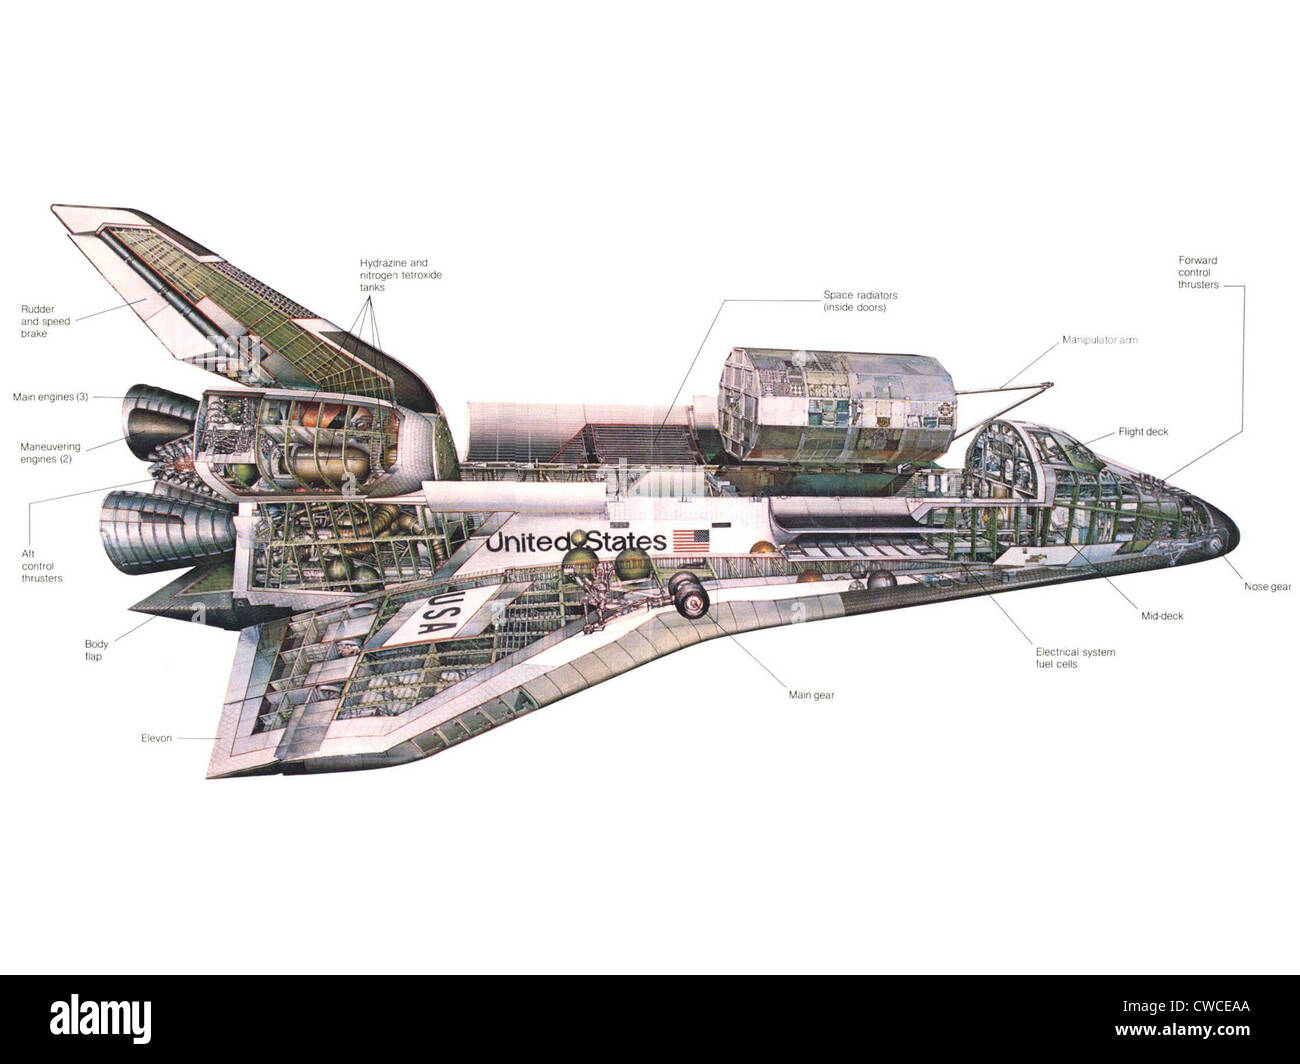 Shuttle Cut Out Stock Images Pictures Alamy Su Fuel Pump Diagram Away Of The Space Shows Pressurized Crew Compartment